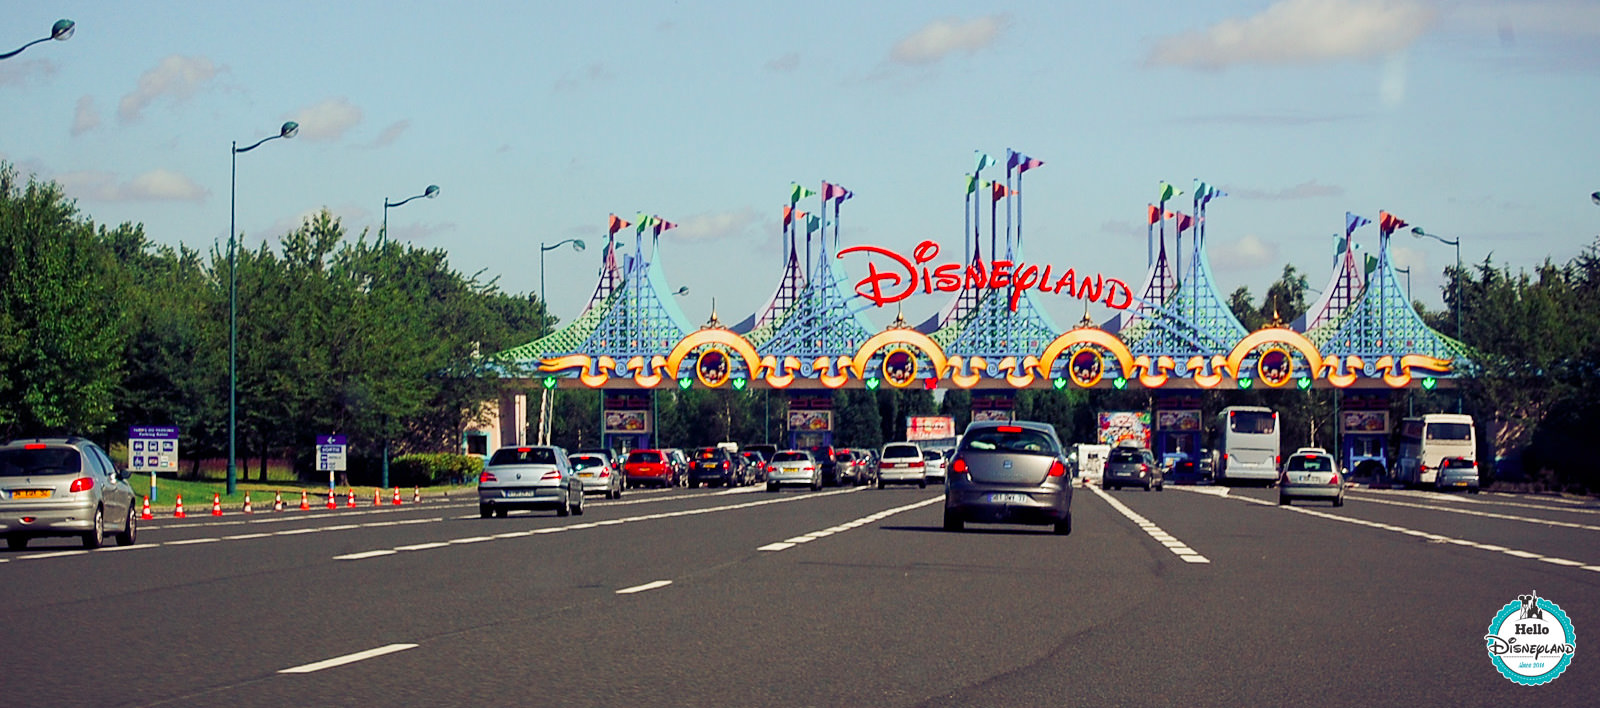 Budget voiture Disneyland Paris